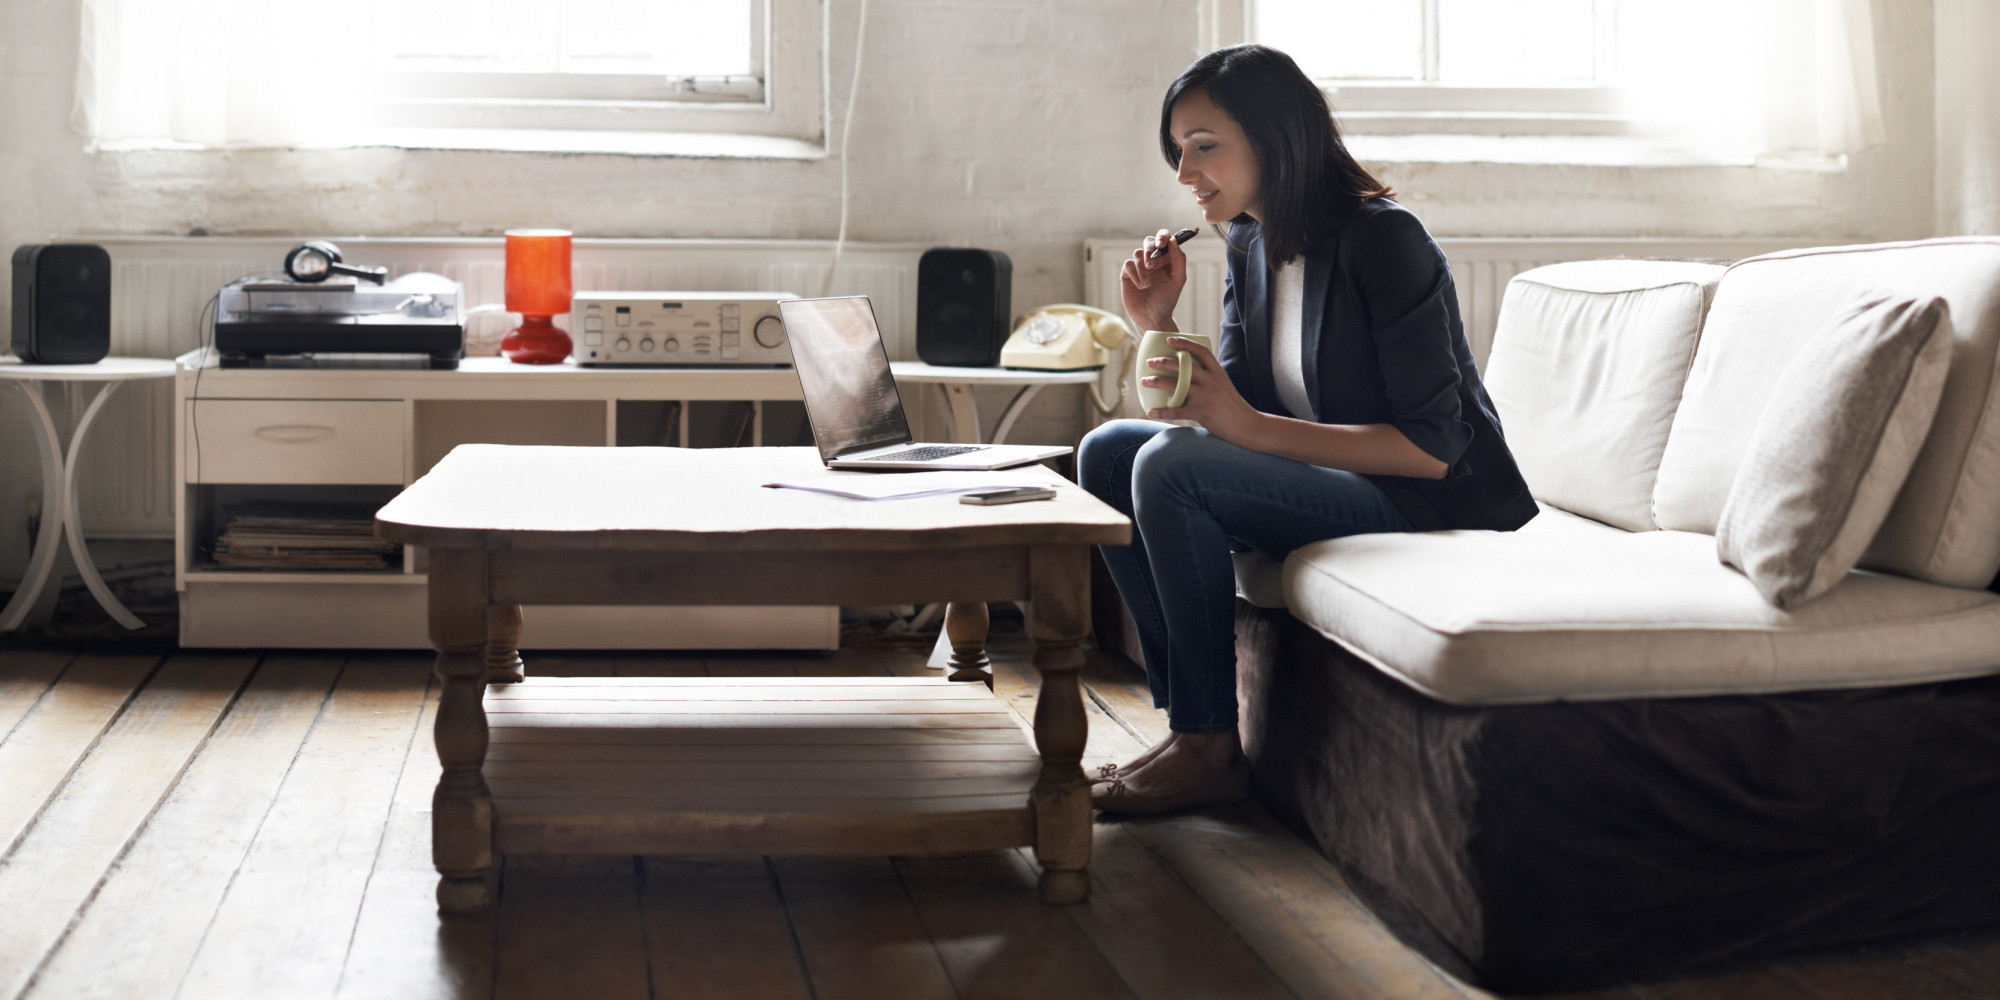 http://www.huffingtonpost.com/2015/01/27/work-from-home-health_n_6546838.html?ref=topbar